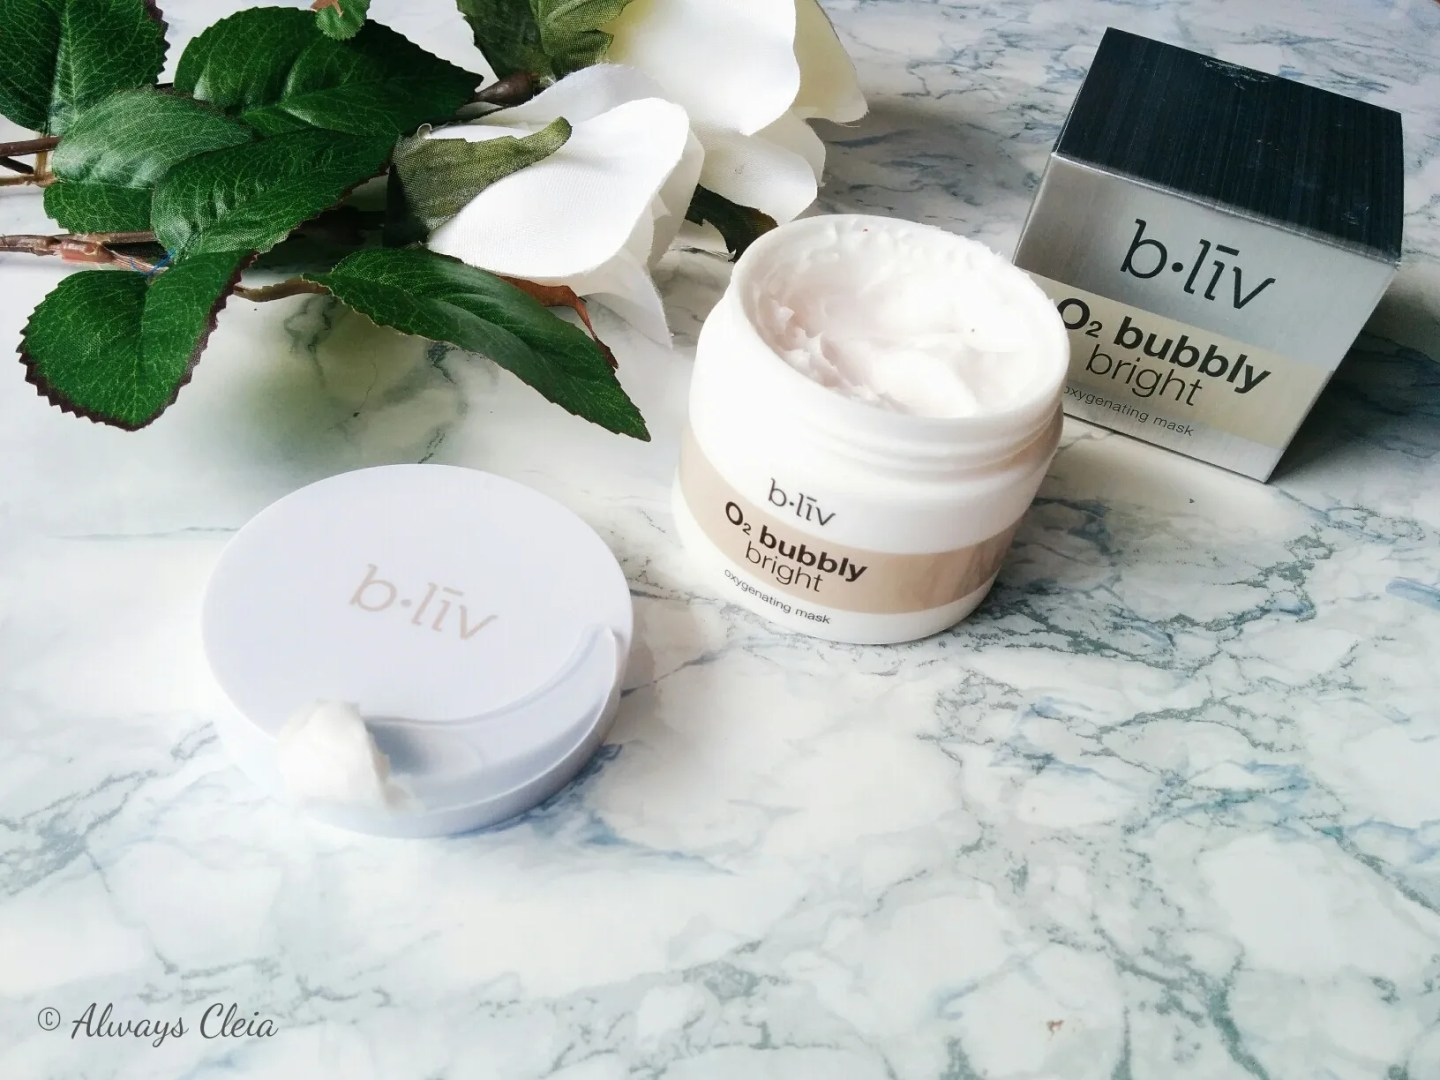 B.Liv O2 Bubbly Bright Mask Review